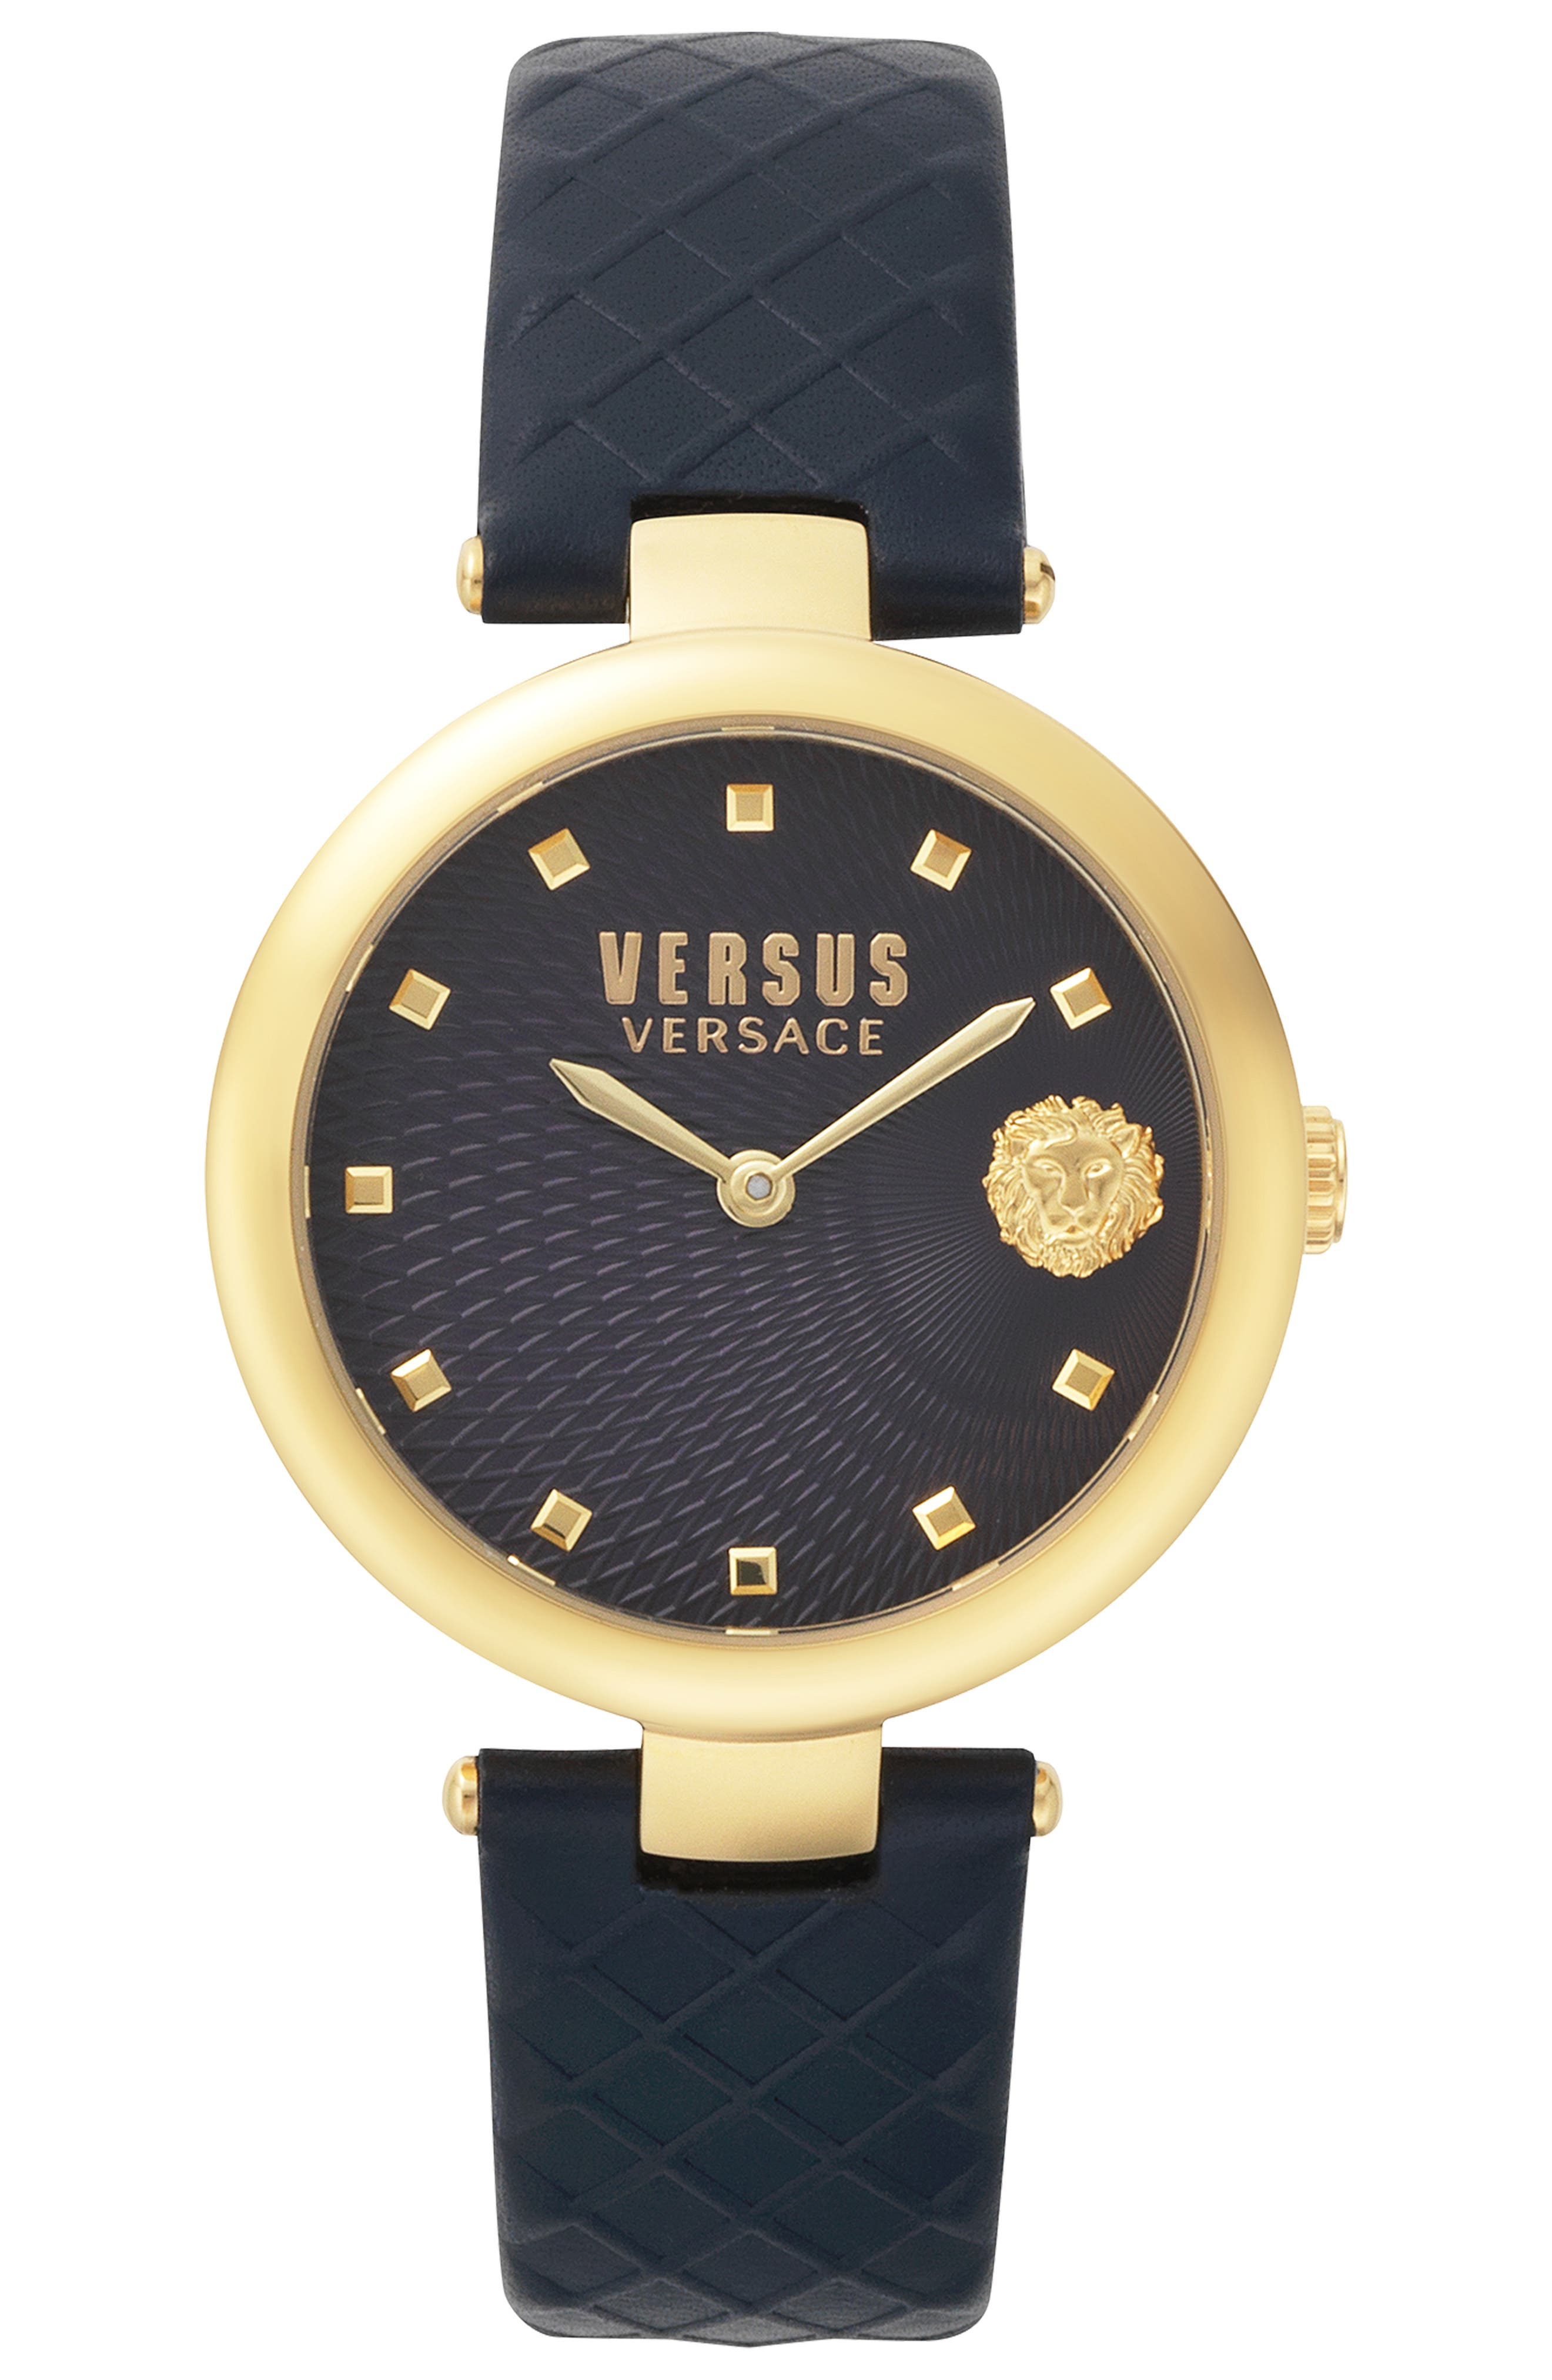 VERSUS VERSACE Buffle Bay Leather Strap Watch, 36mm, Main, color, BLUE/ GOLD